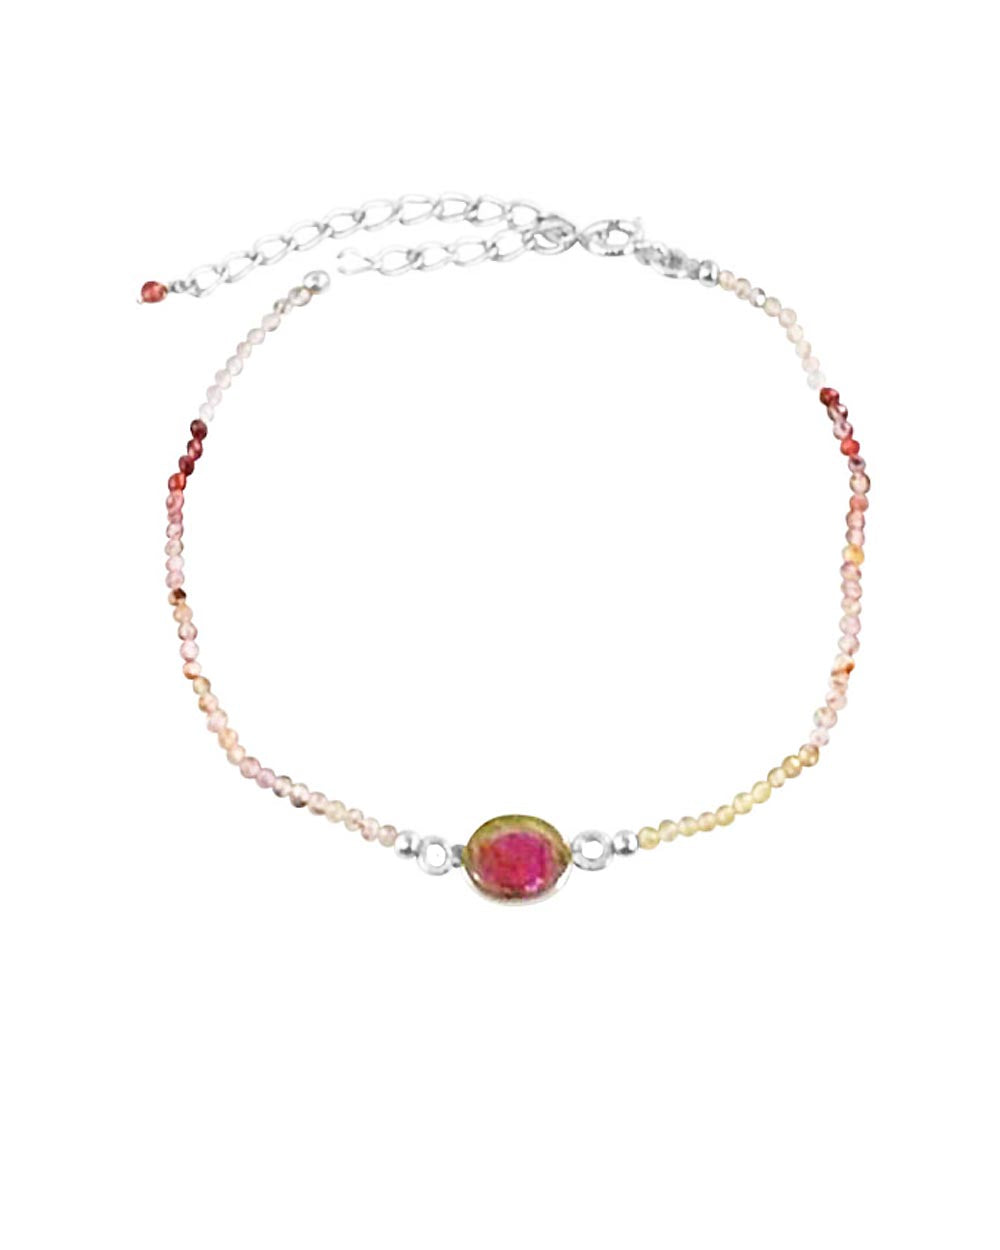 Empowered Watermelon Tourmaline Bracelet - Abundance